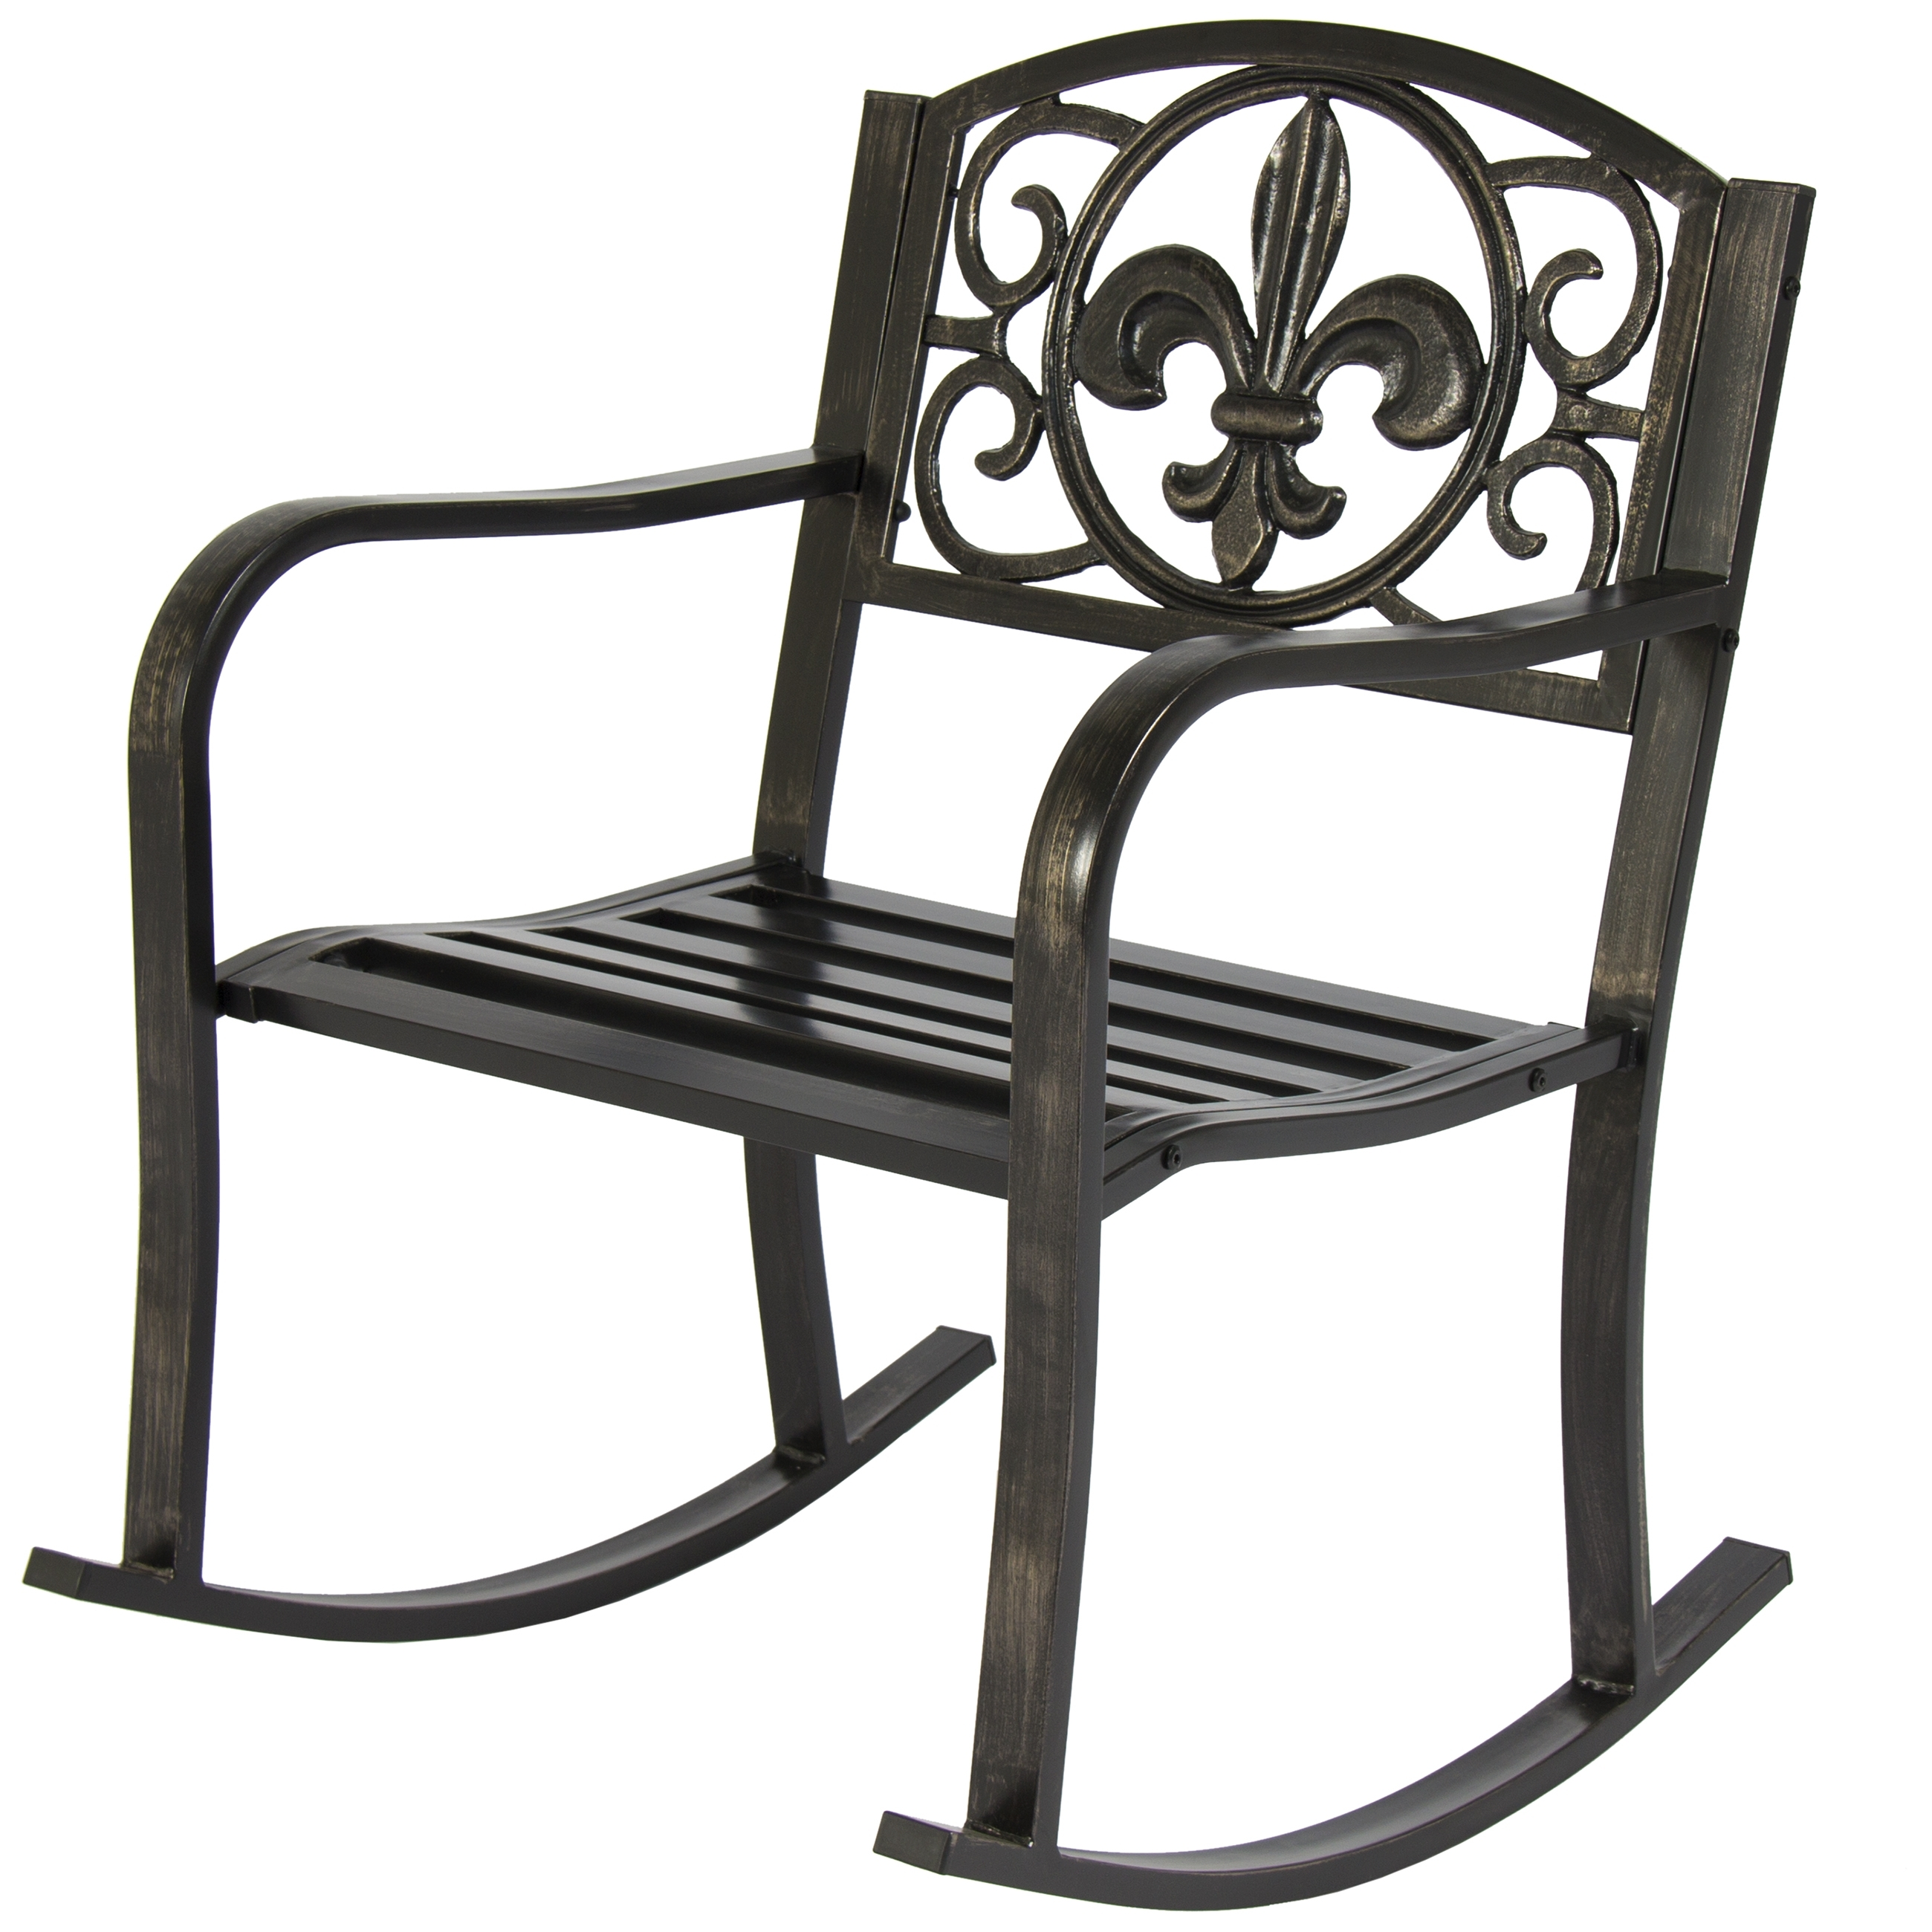 2018 Best Choice Products Metal Rocking Chair Seat For Patio, Porch, Deck For Iron Rocking Patio Chairs (View 3 of 15)